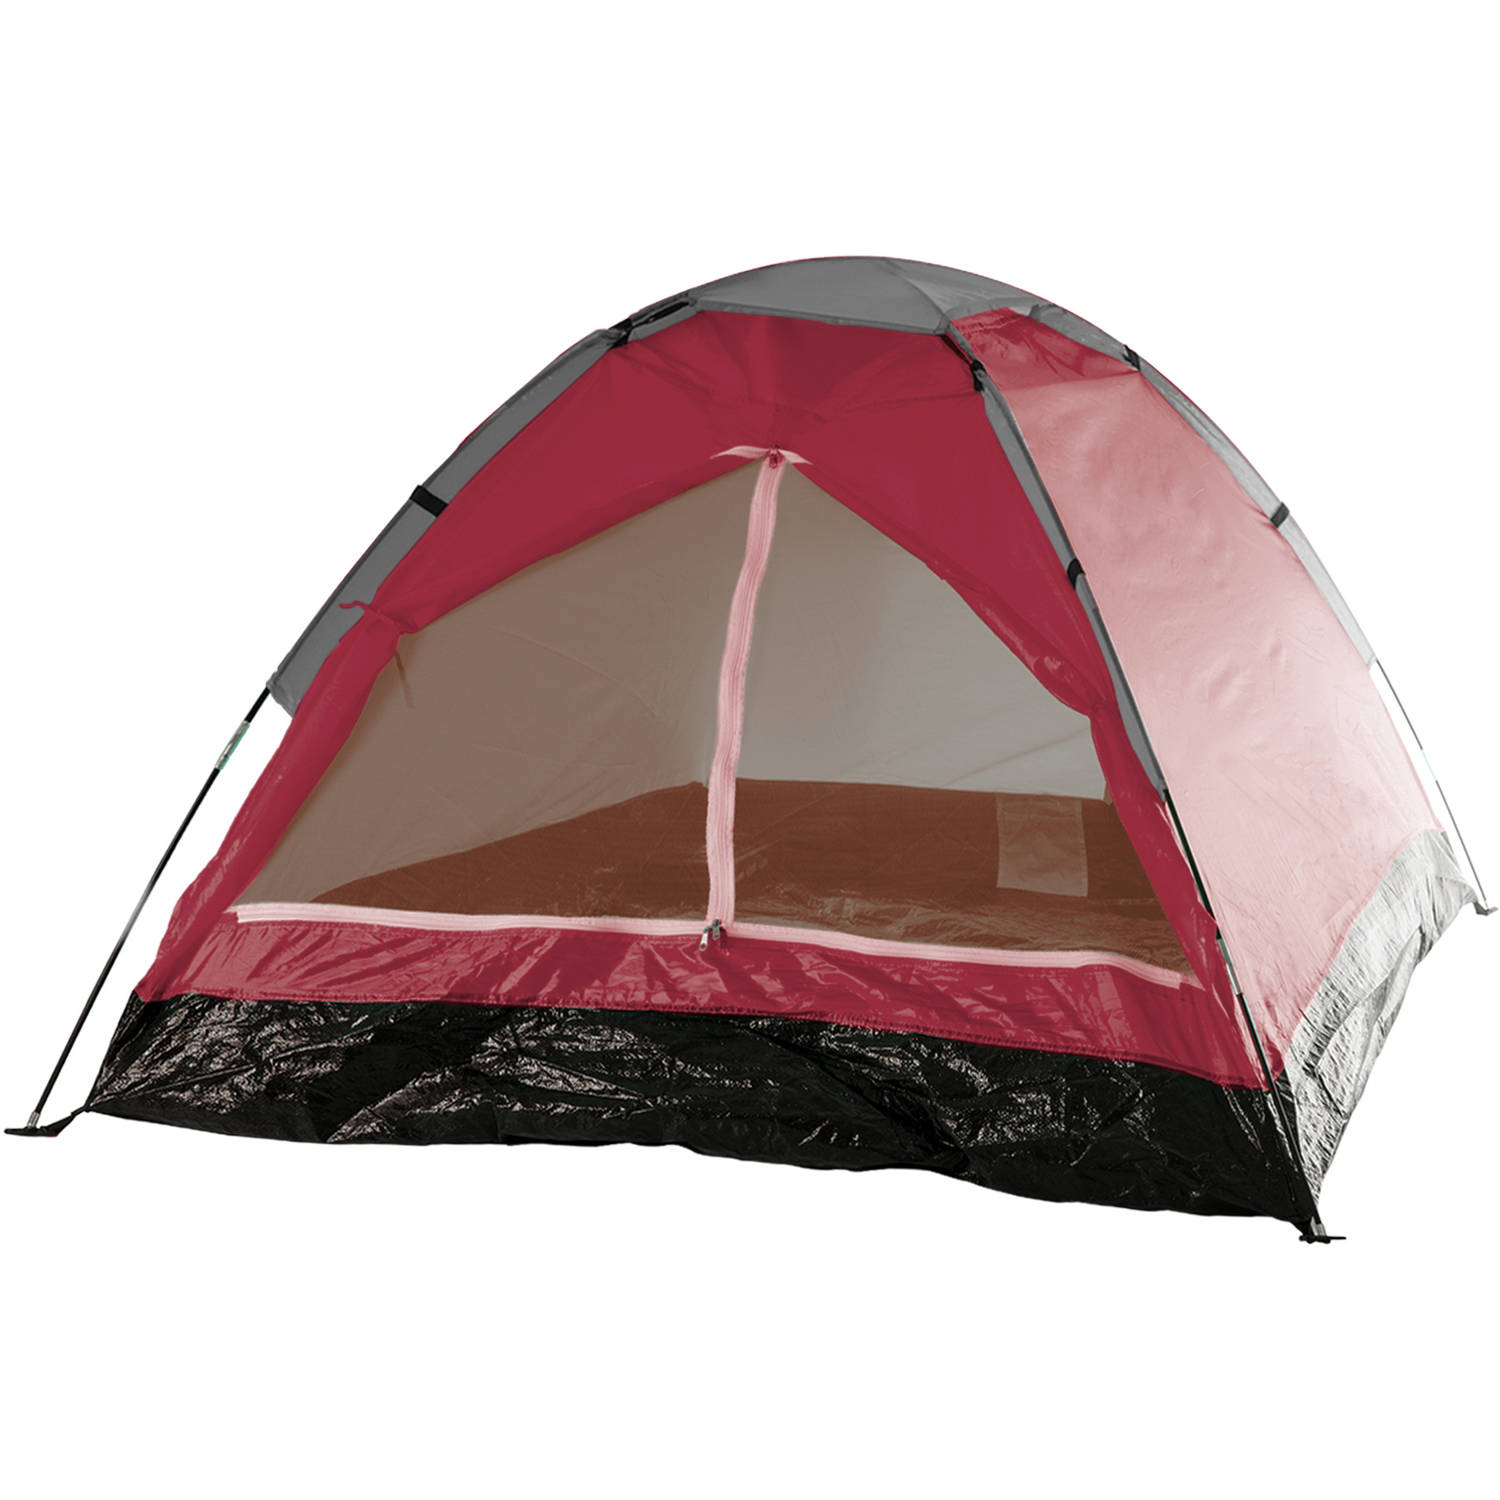 Wakeman Outdoors Happy Camper 2-Person Tent, Brick Red